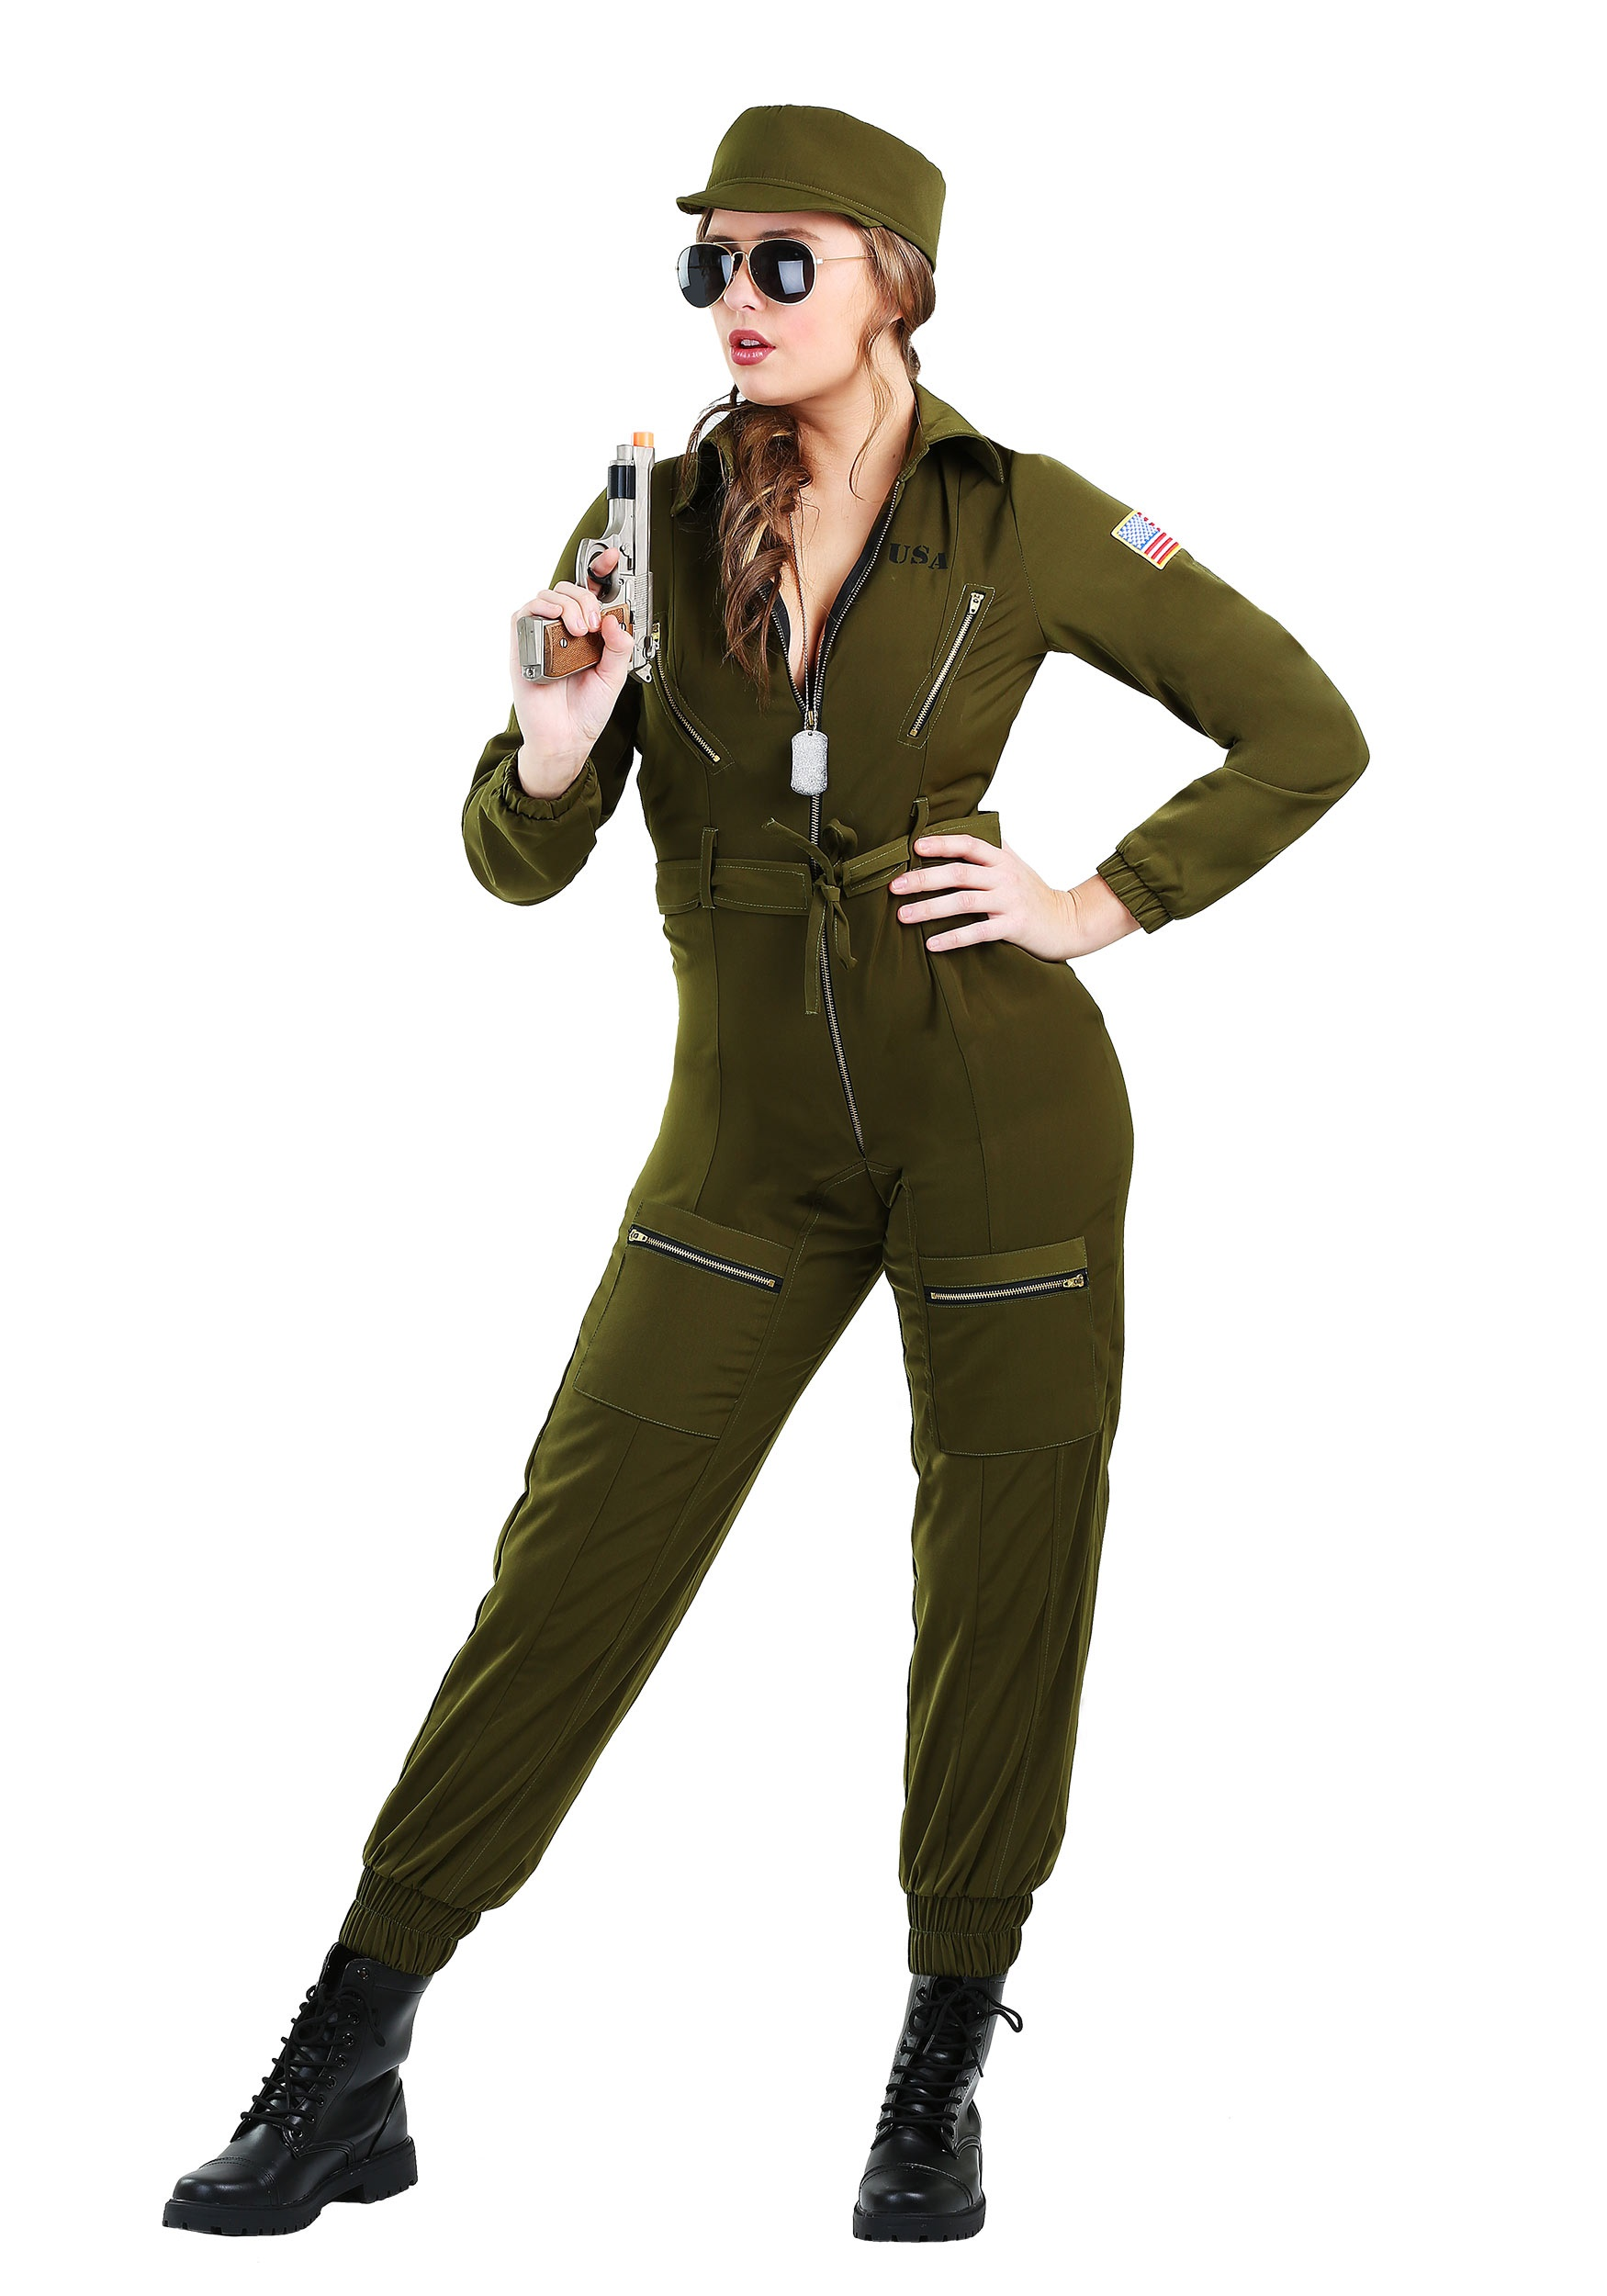 Army flightsuit costume for adult women army flightsuit costume for women solutioingenieria Gallery